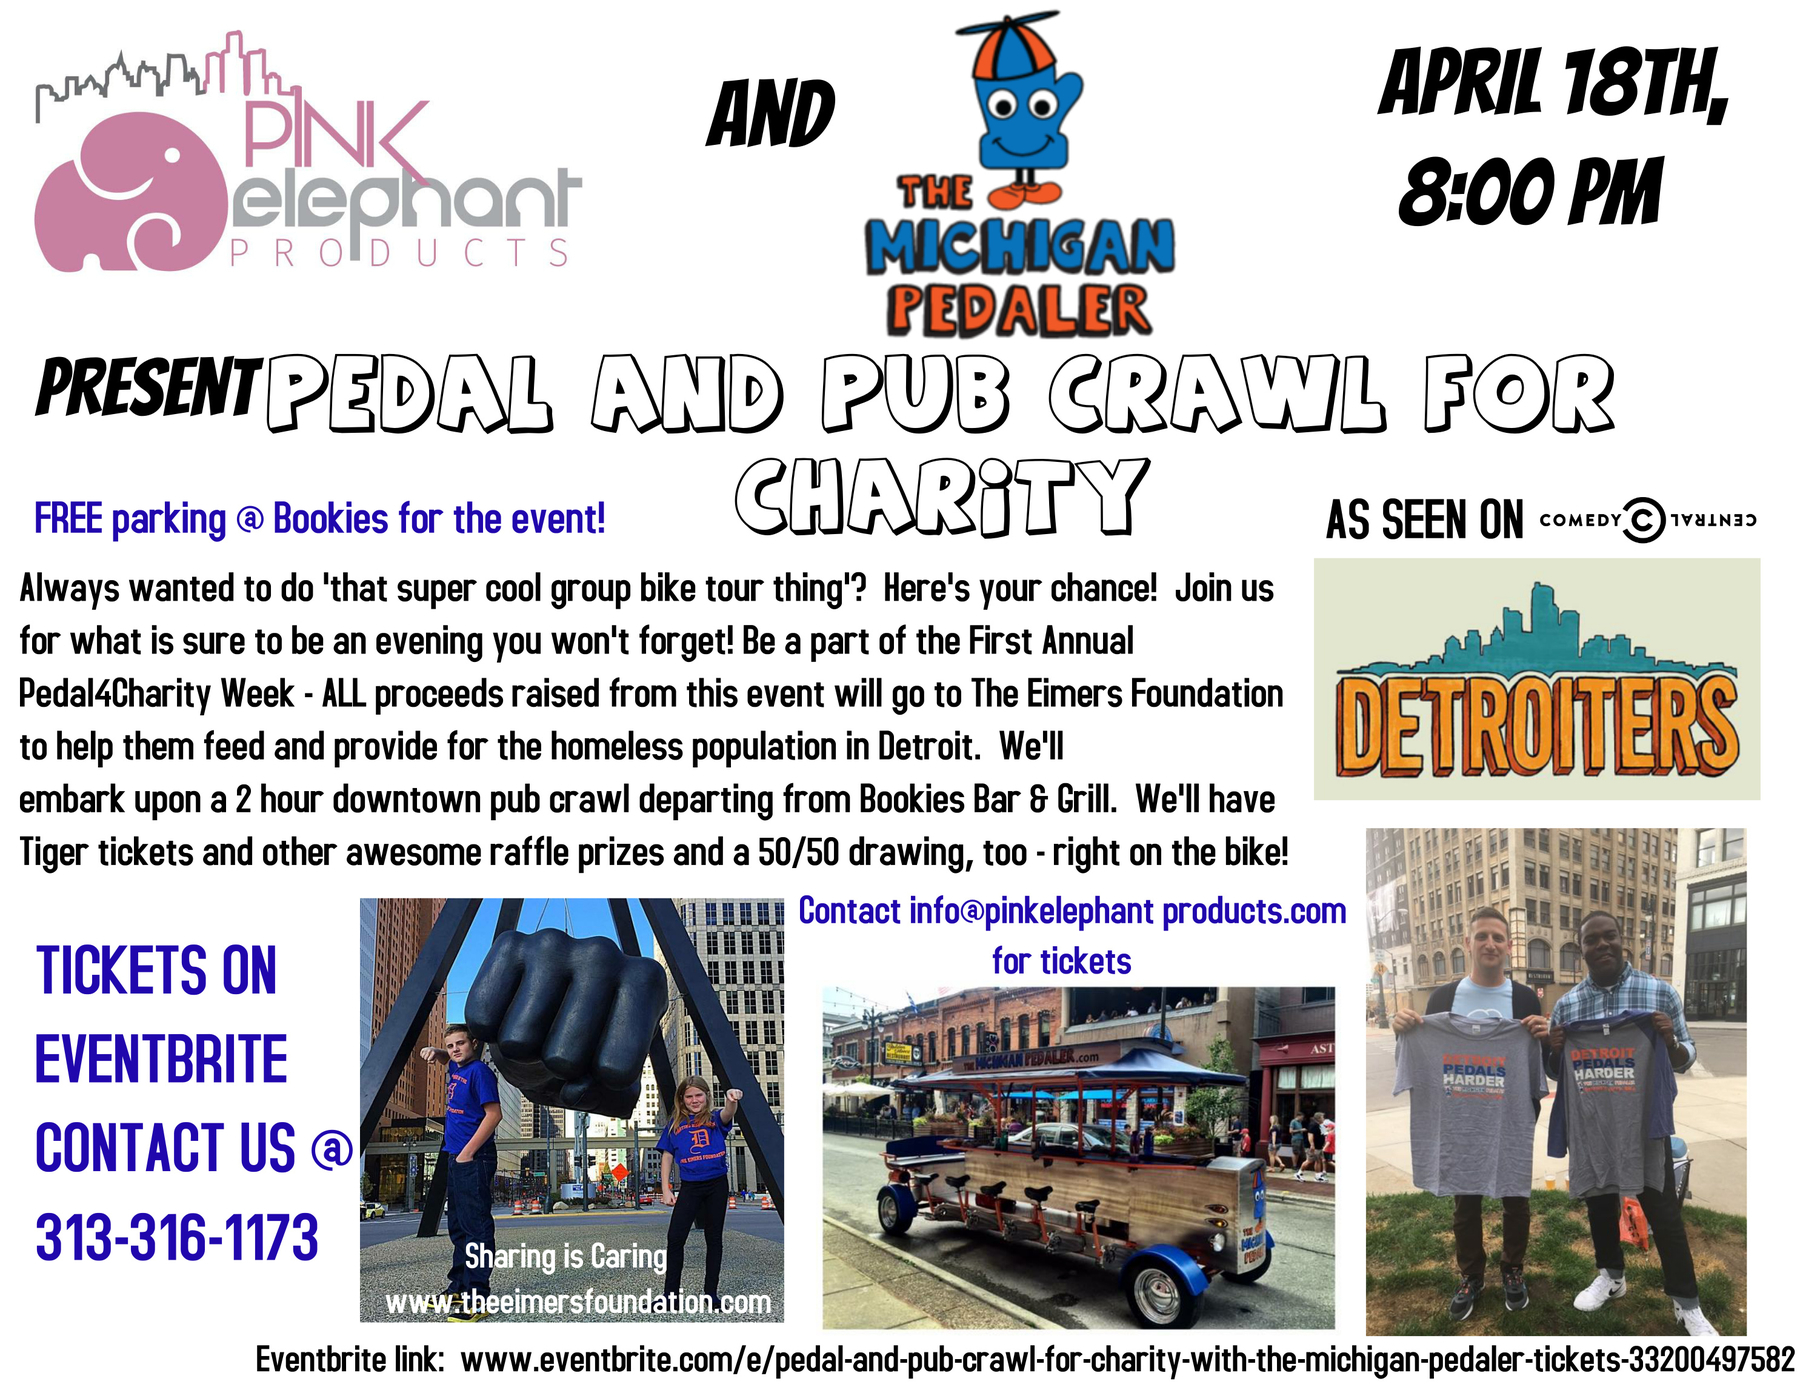 First Annual #Pedal4Charity Week